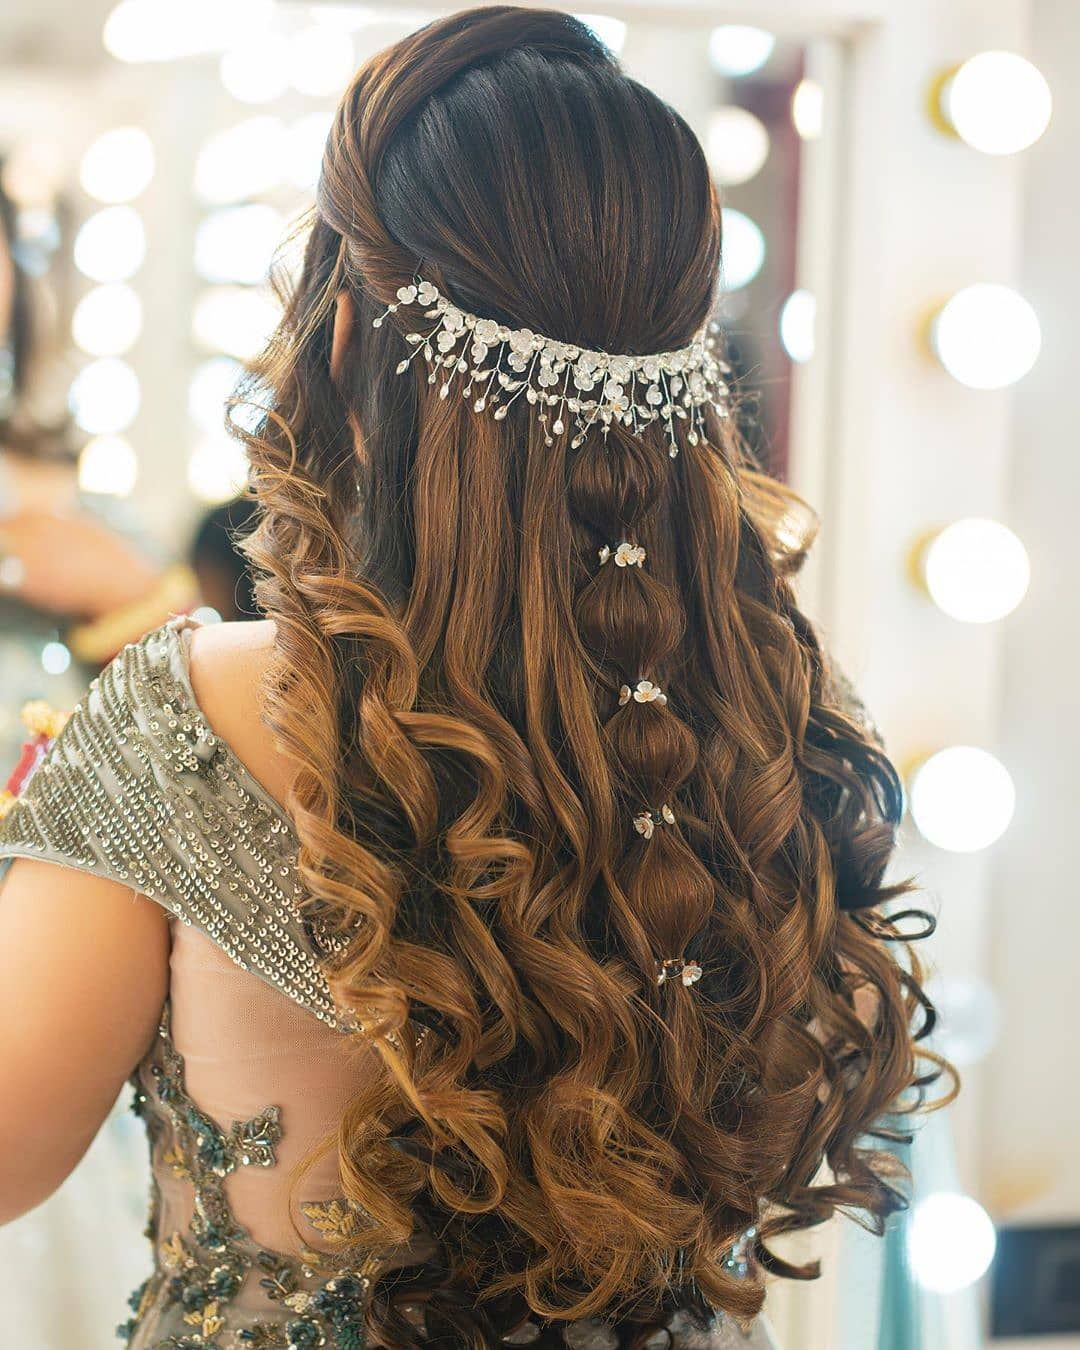 Bridal Hairstyle Ideas With Accessories Hair Styles Long Hair Styles Engagement Hairstyles